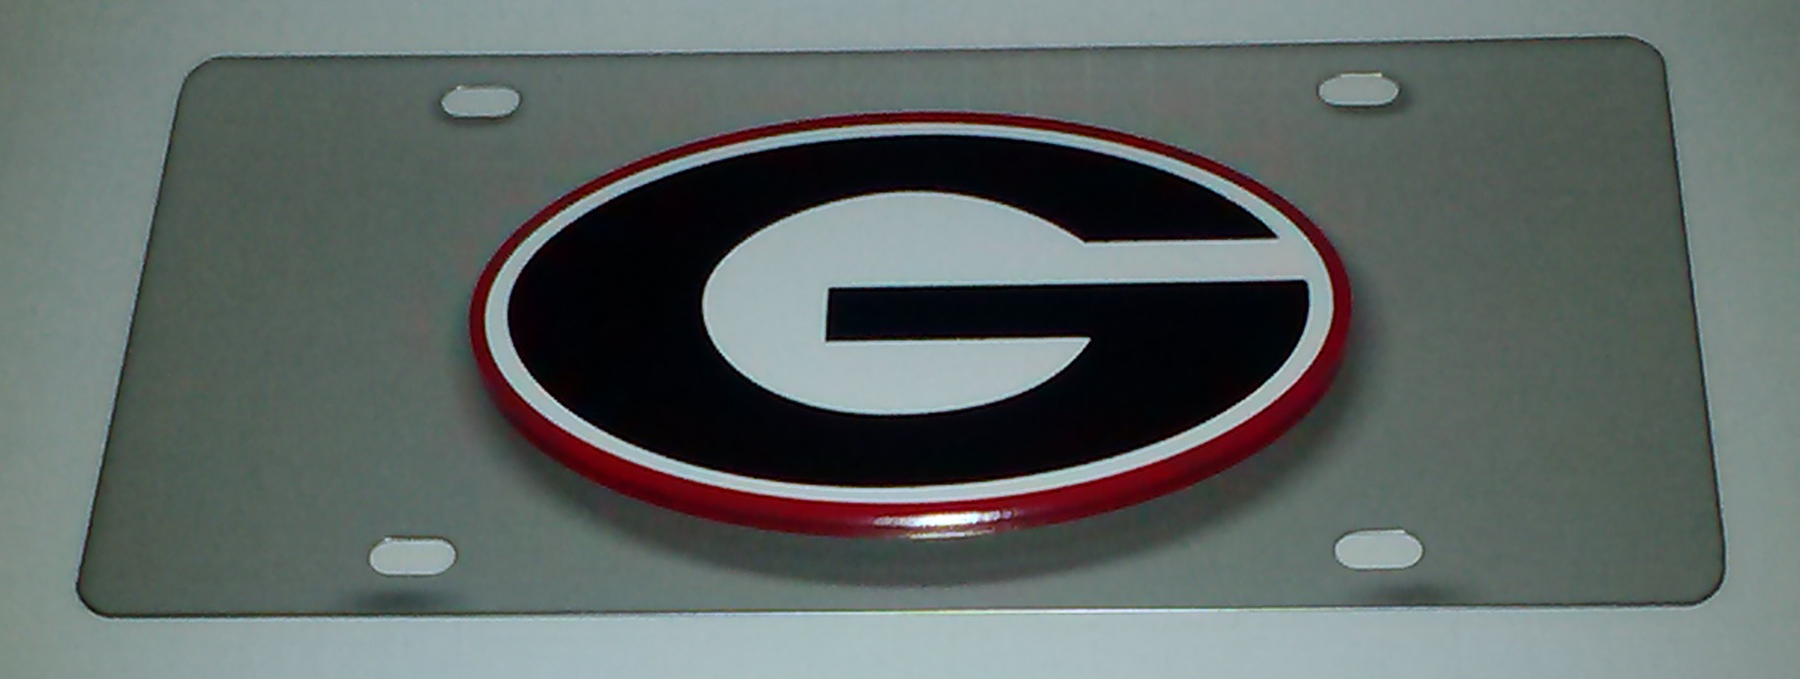 Georgia U Stainless Steel License Plate